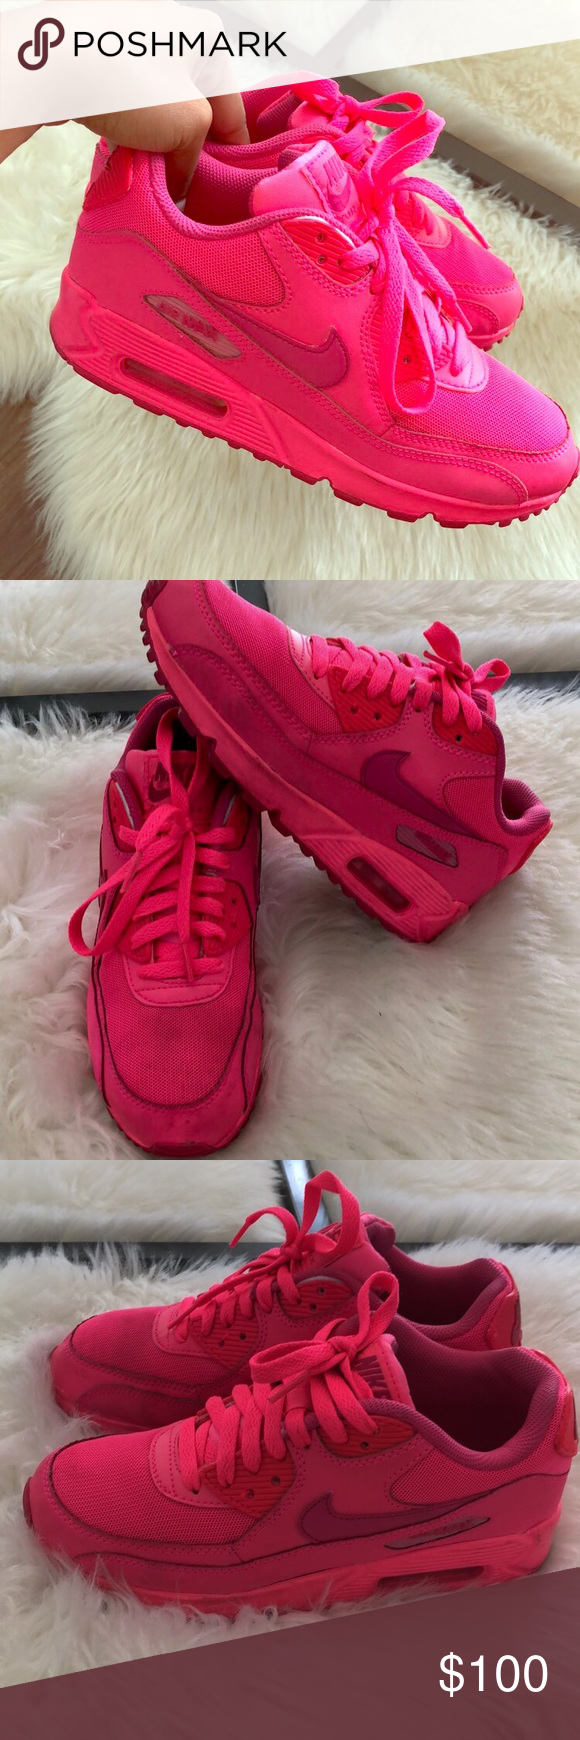 Nike Air Max 90 s (Hot Pink) Purchased from Flight Club in NYC. There are a  few scuff marks on both shoes 8fb391606